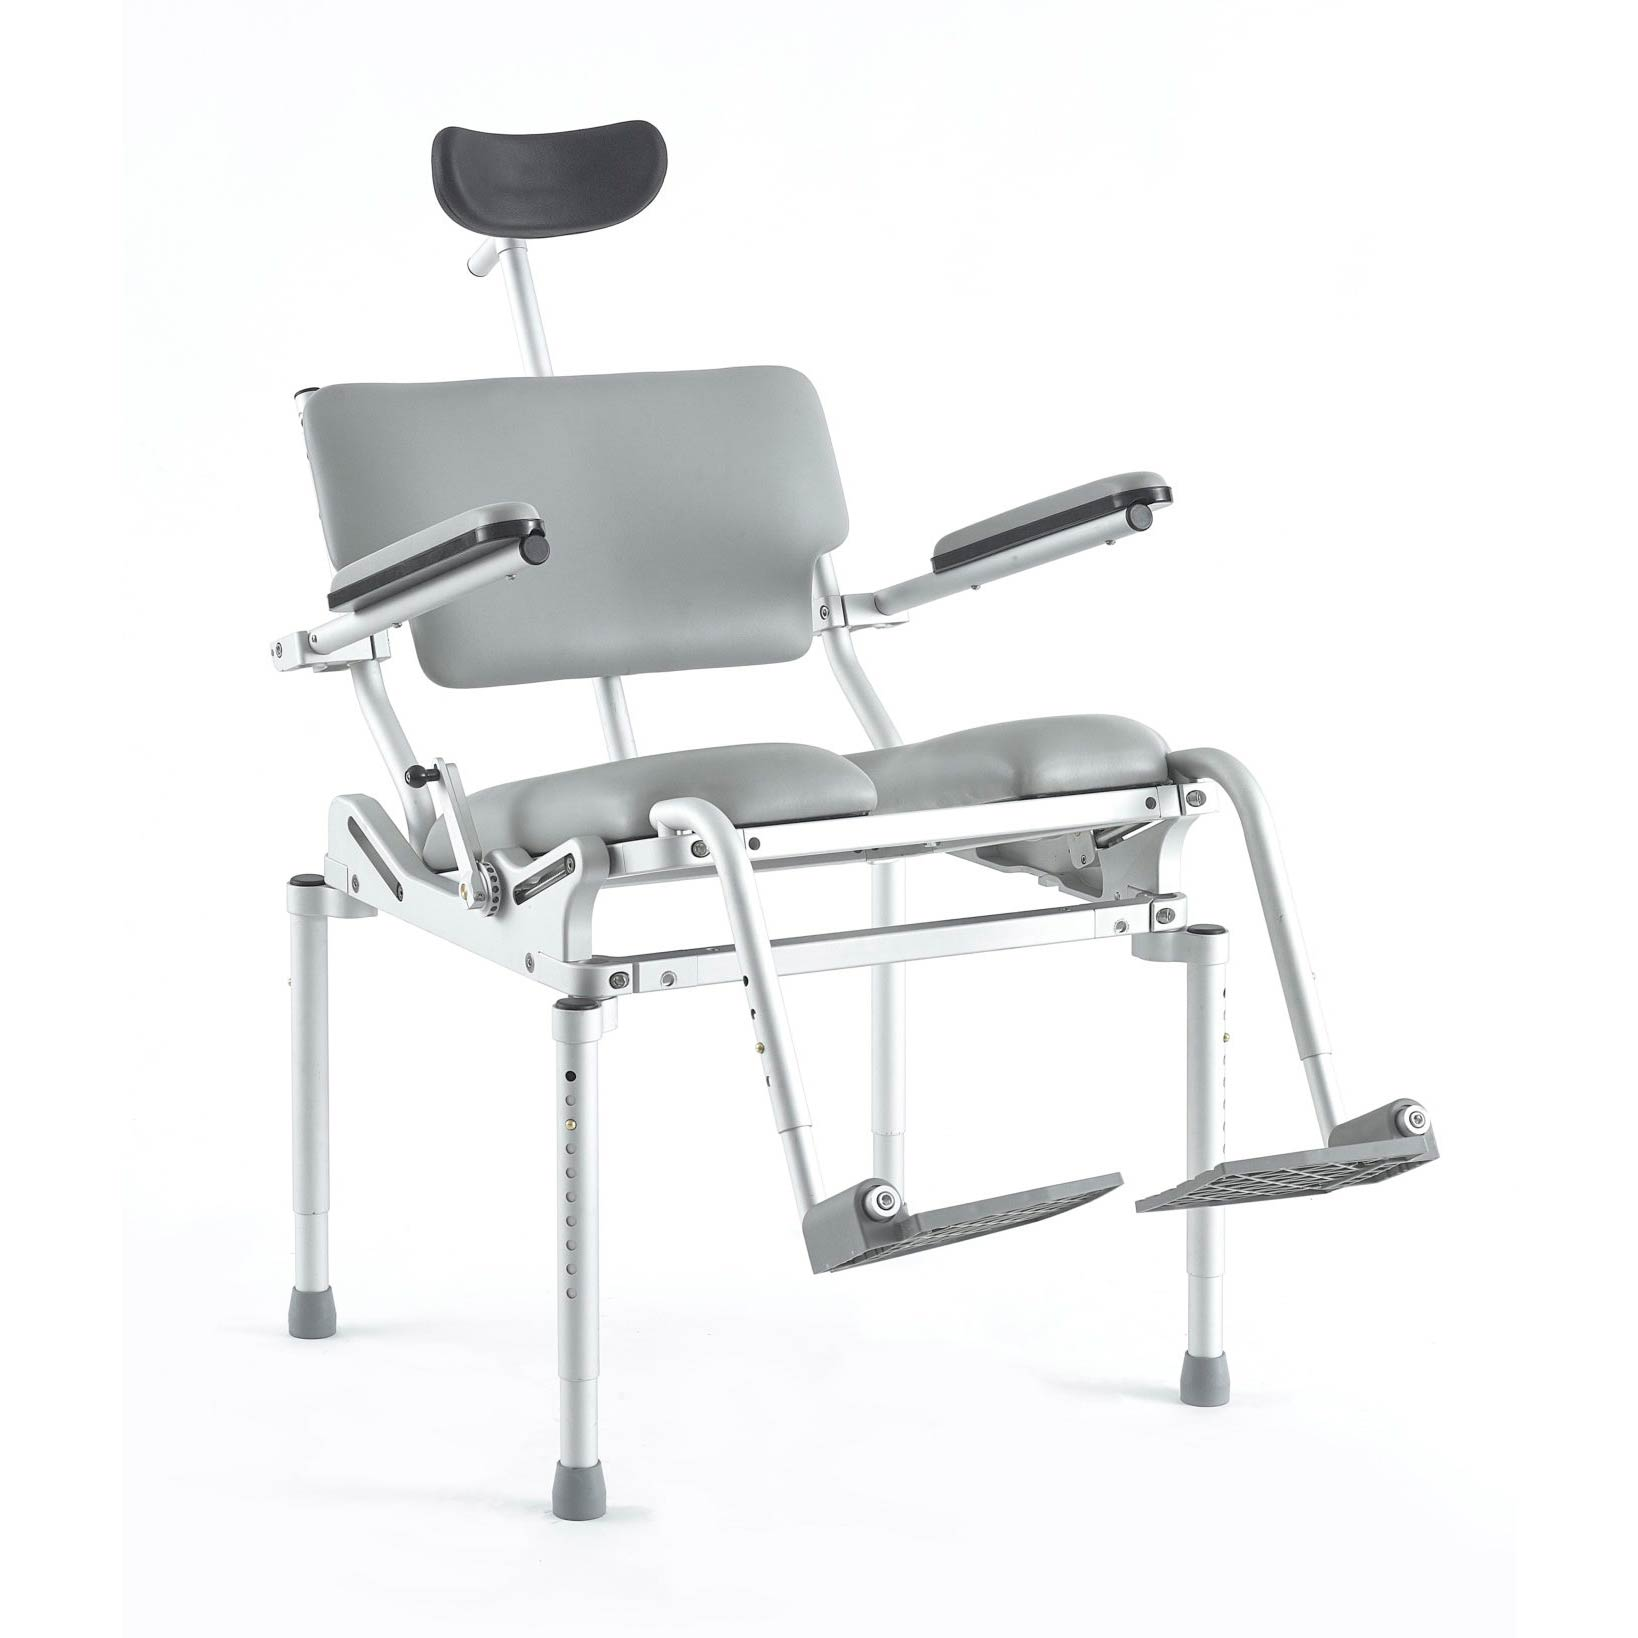 Nuprodx Multichair 3200Tilt Tub And Toilet Chair | Medicaleshop